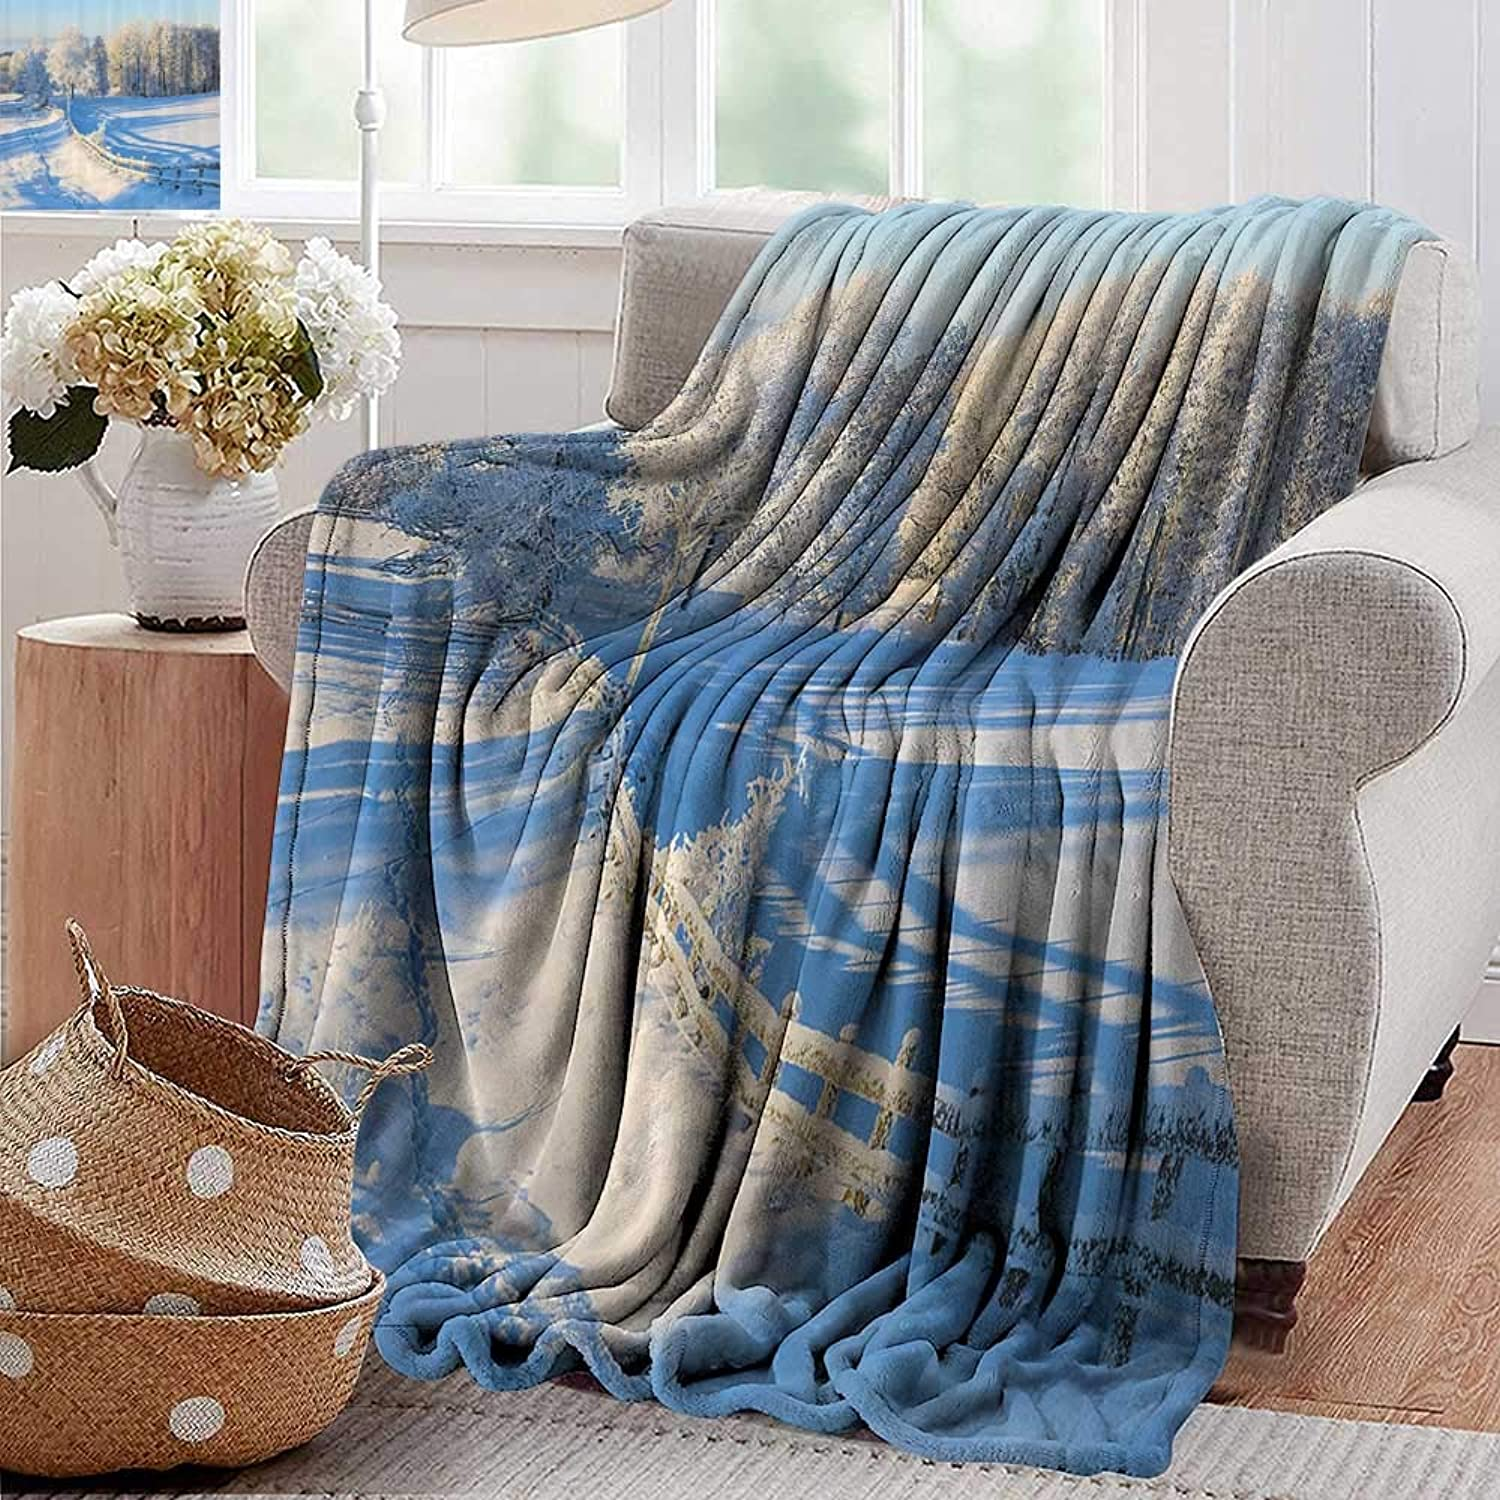 PearlRolan Luxury Flannel Fleece Blanket,Farm House Decor,Winter Snow Valley with Oak Borders Pines Frozen Pastoral High Cold Lands,White bluee,All Season Light Weight Living Room Bedroom 35 x60